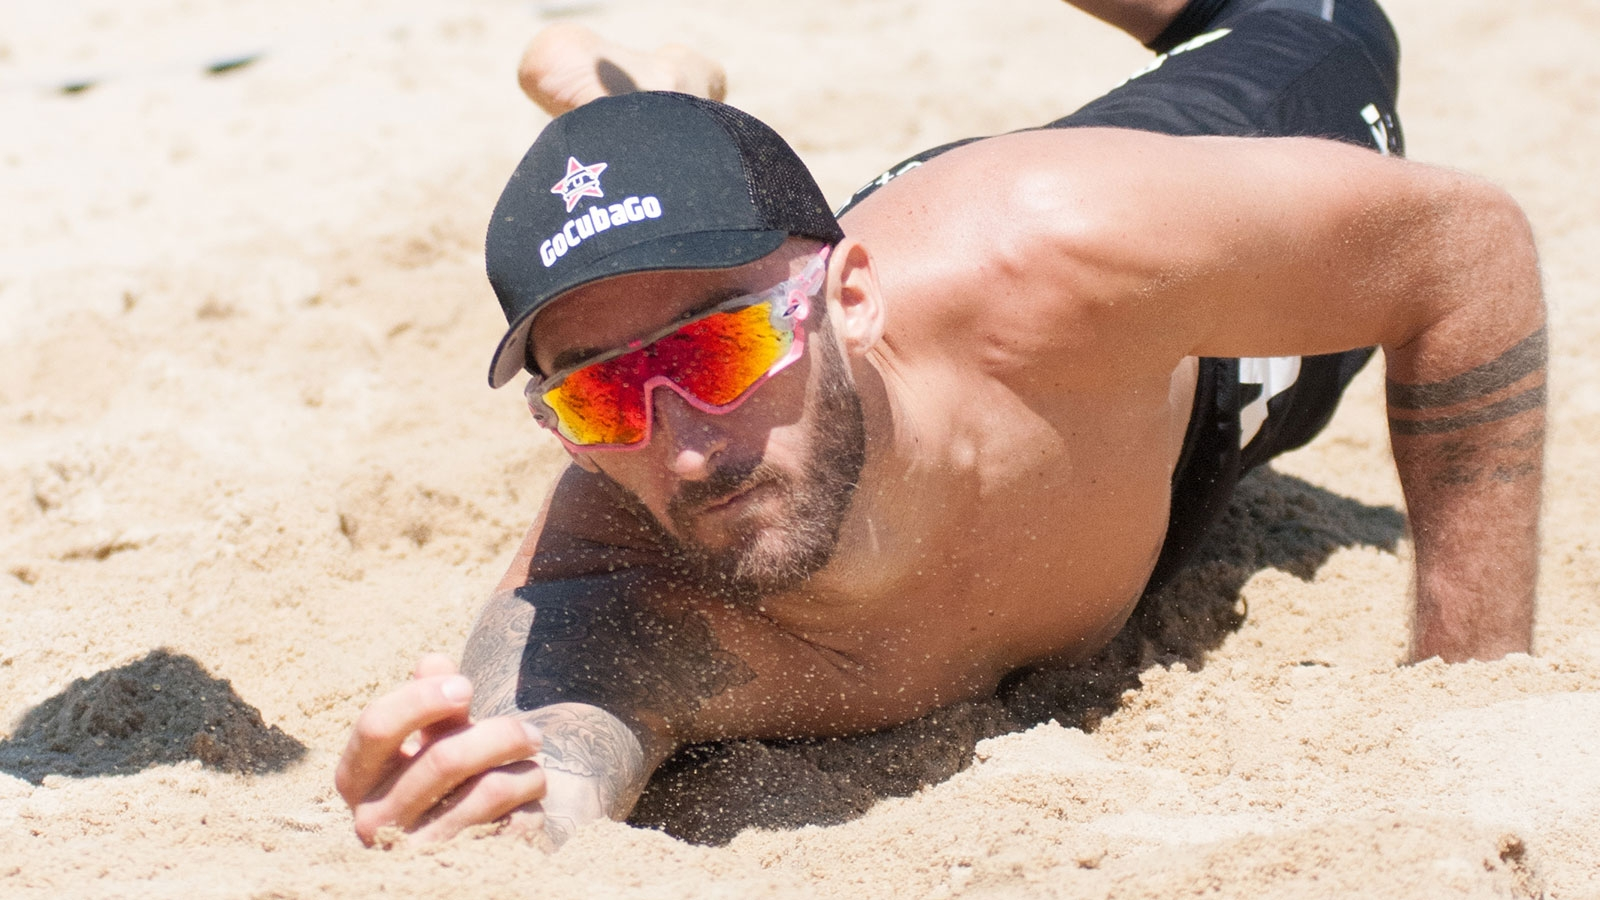 Sponsoring Go Cuba Go - Beachvolleyball-Team Winter-Hörl | 2019 (Tobias Winter, Sand) © Team Winter Hörl